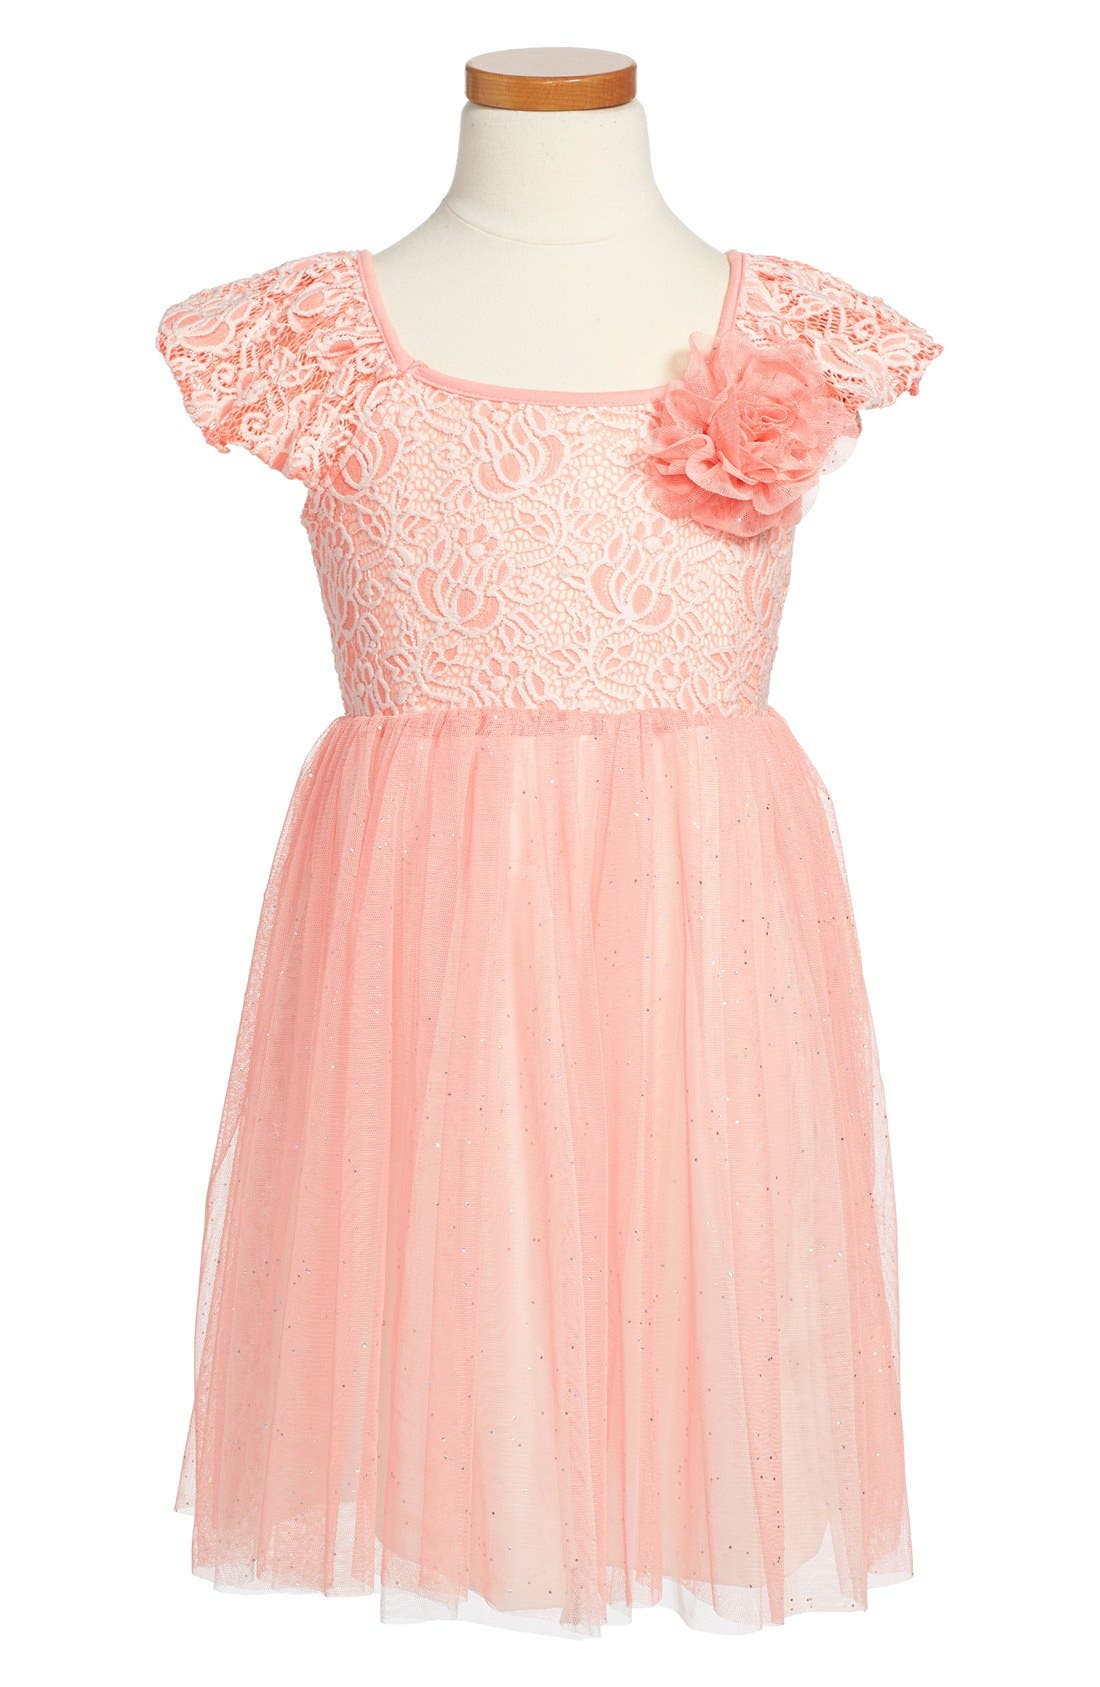 Popatu Tulle Skirt Party Dress (Toddler Girls & Little Girls)